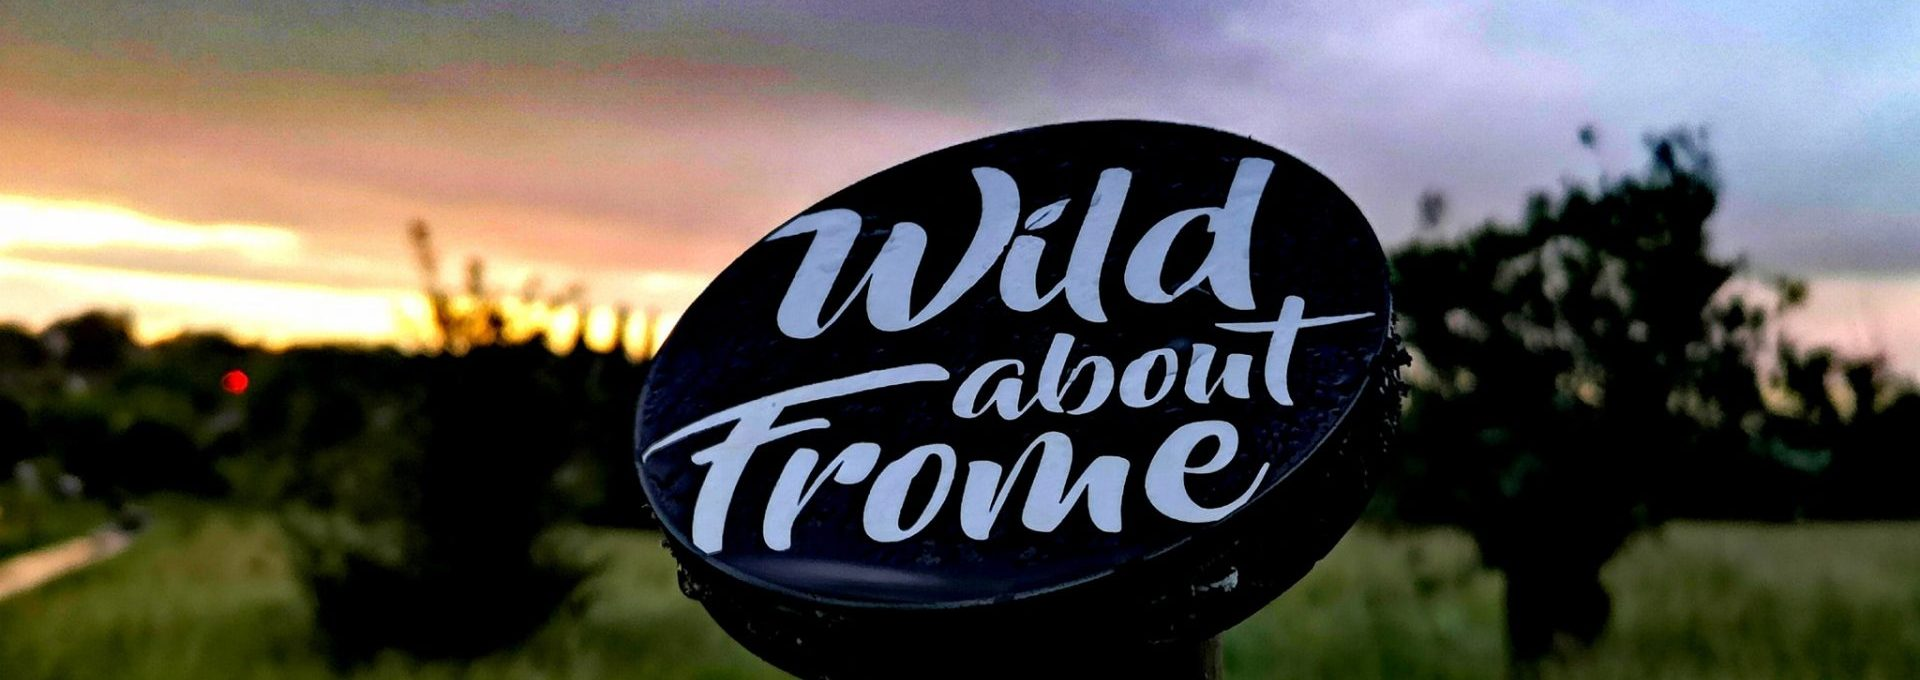 Wild about Frome post at sunset